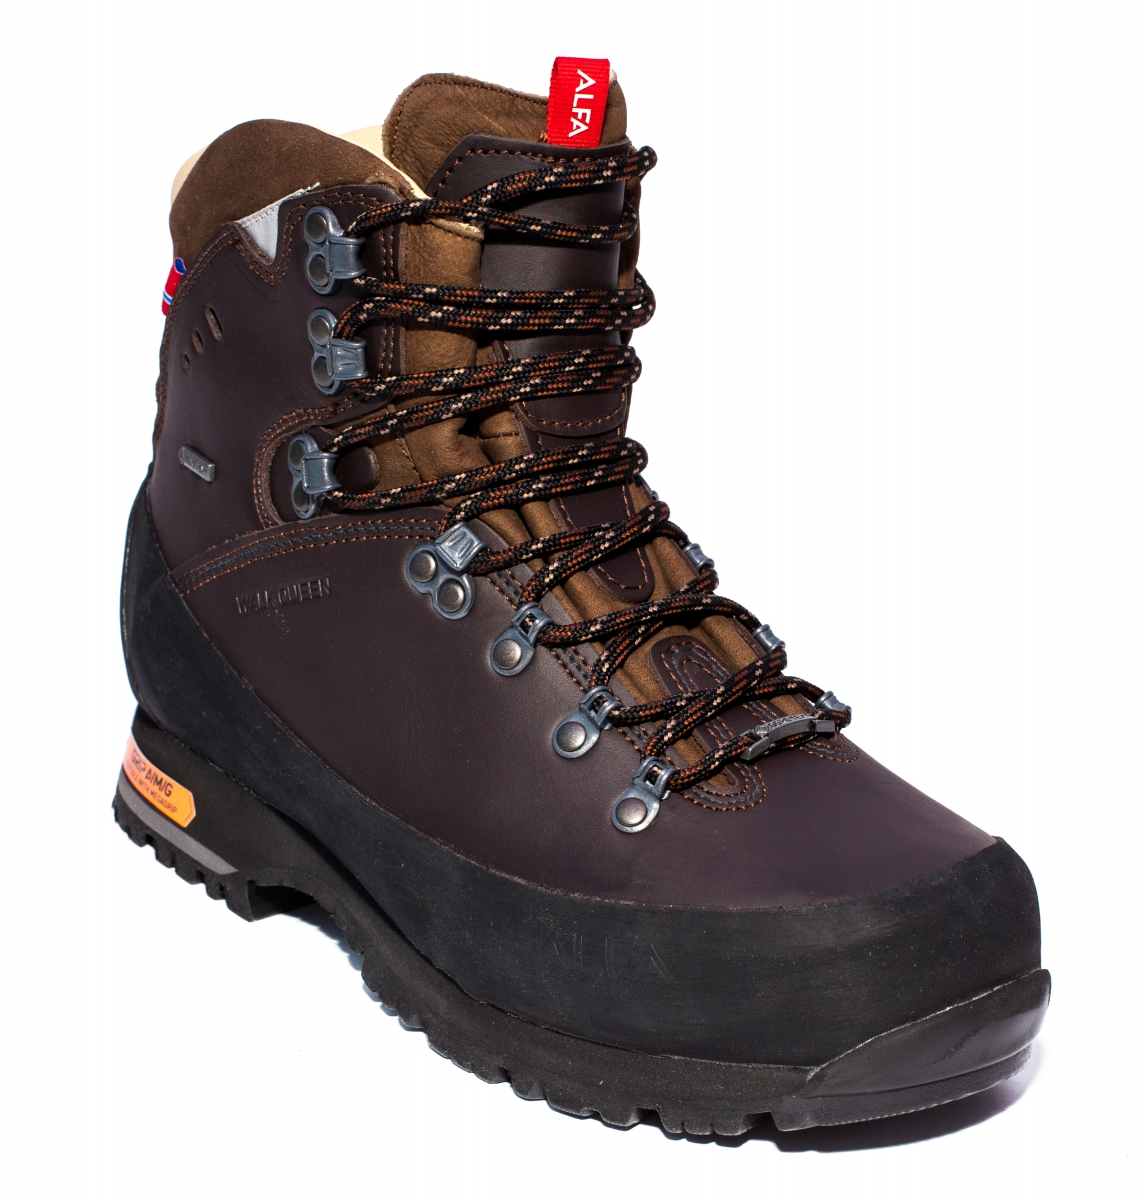 Bocanci gore-tex Alfa Walk Queen Advance GTX maro 36-45